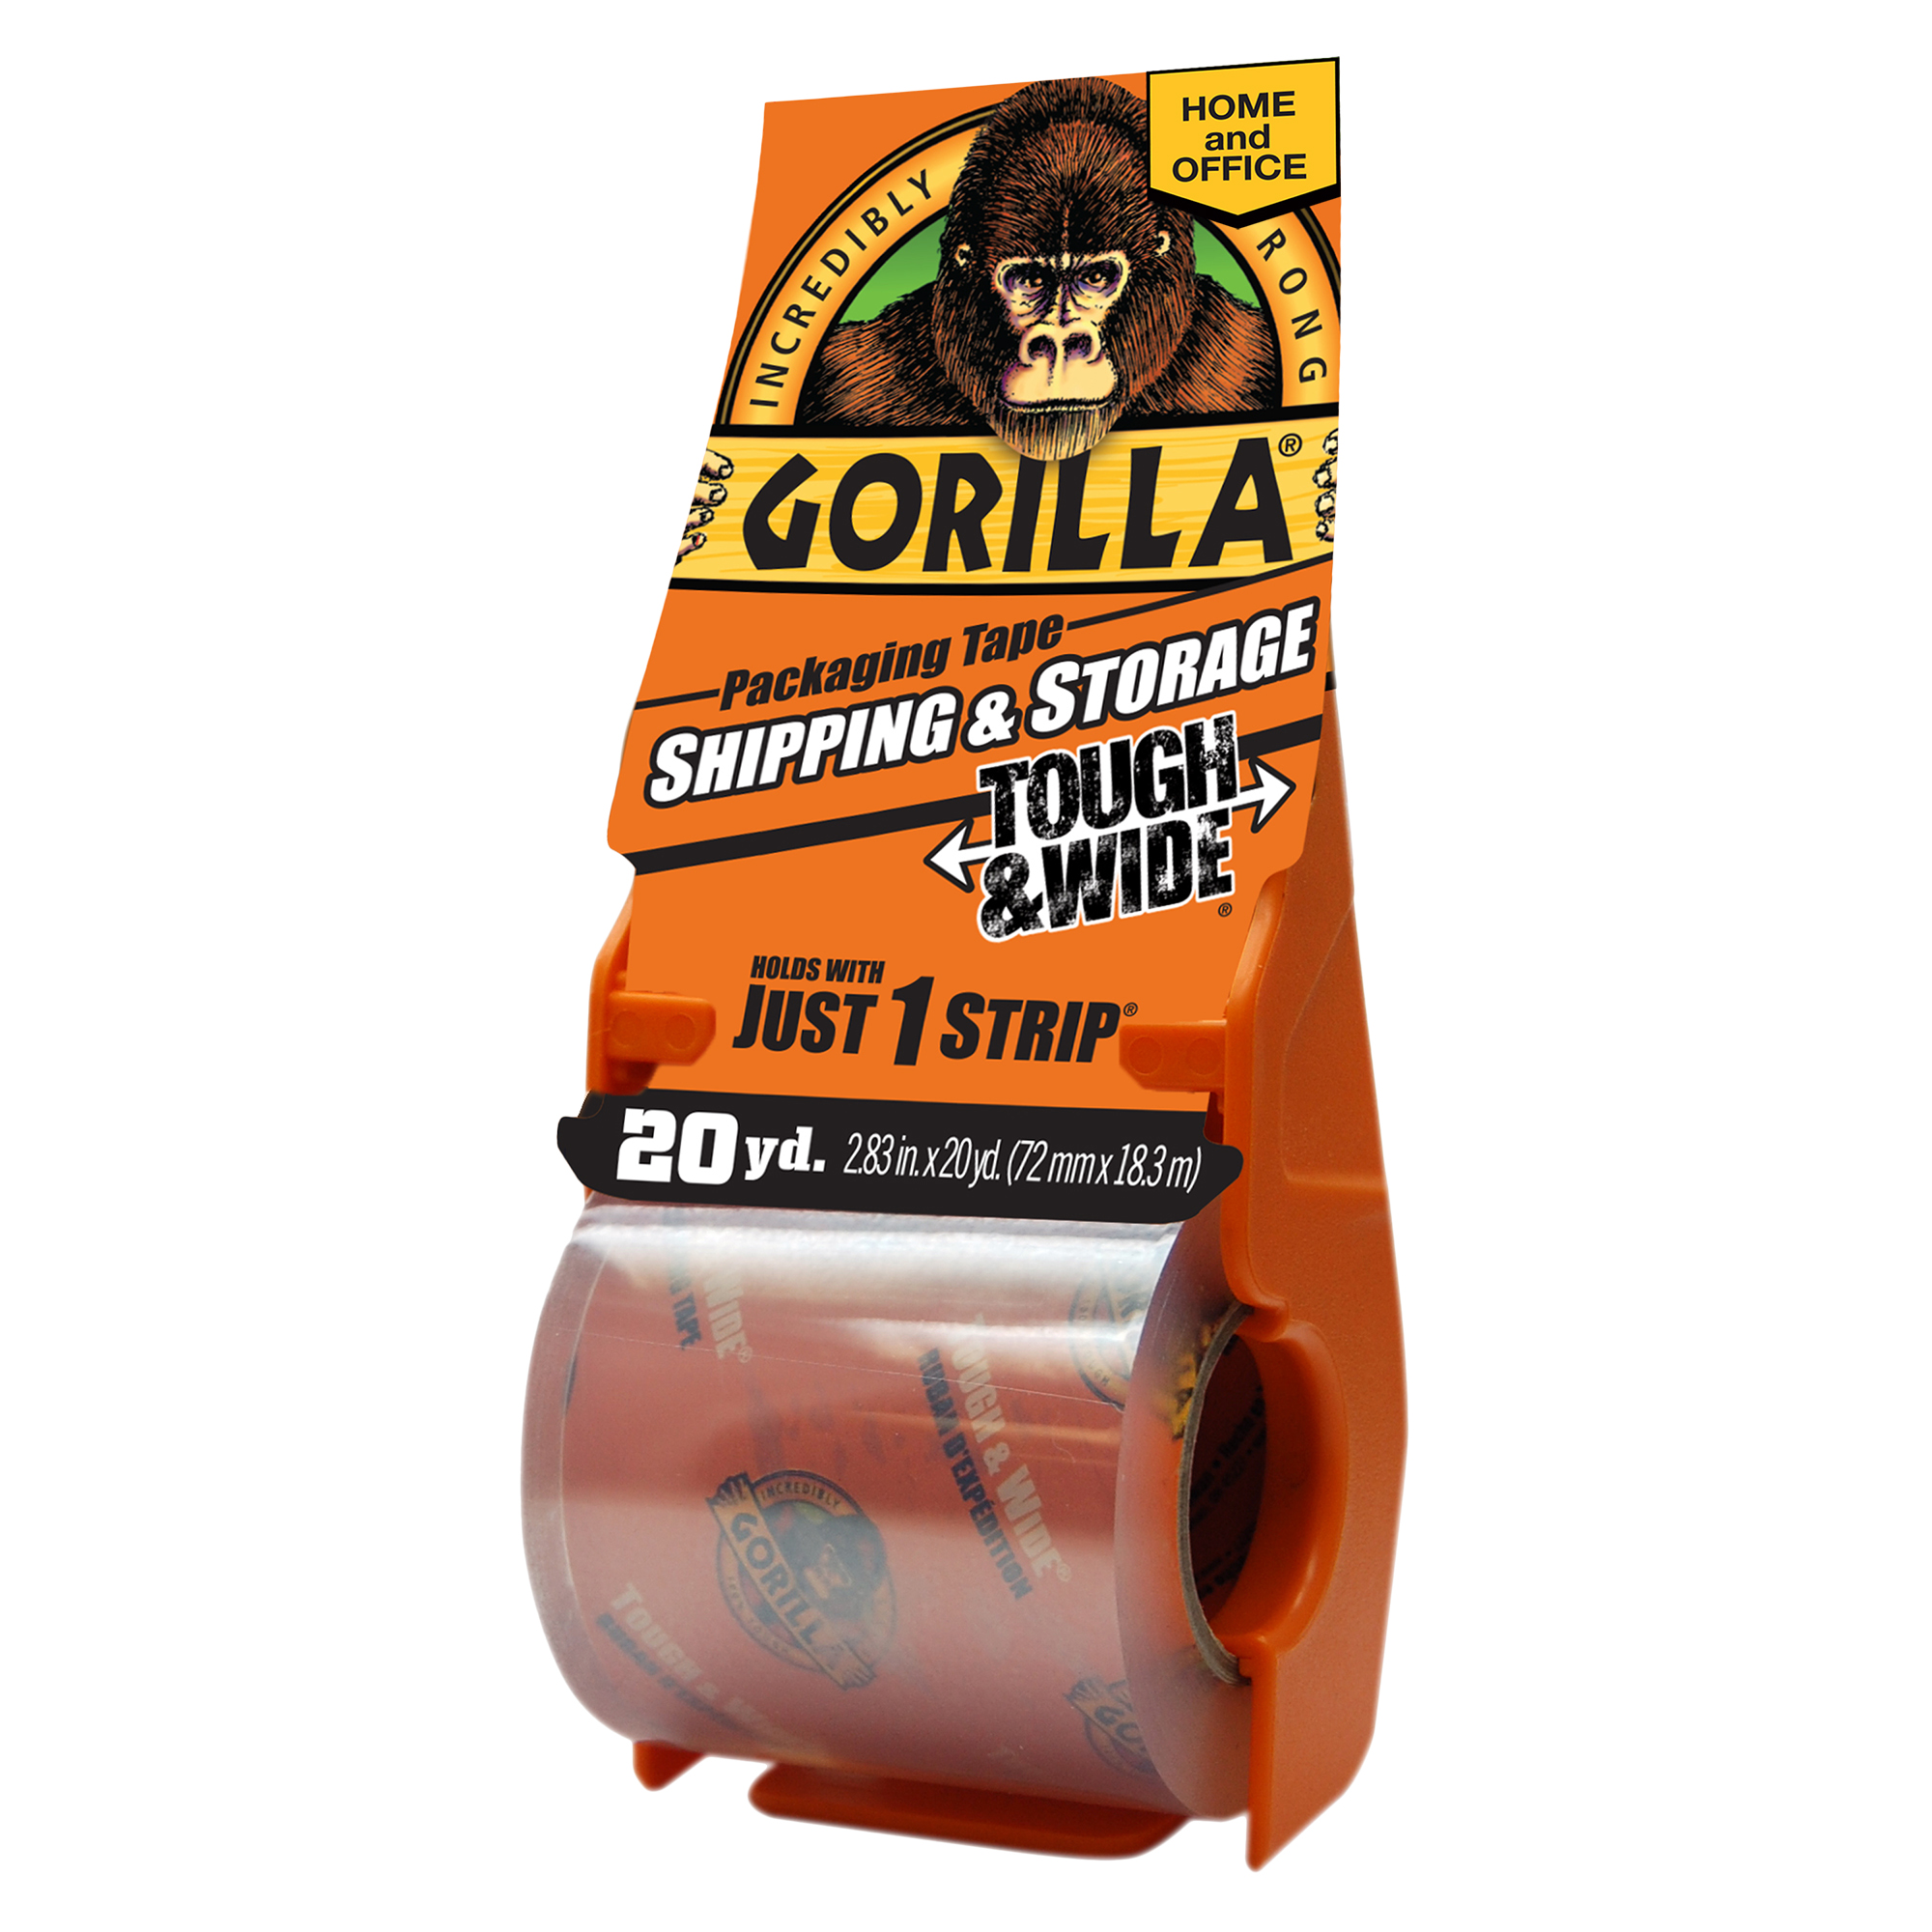 Gorilla Heavy Duty Packaging Tape Tough & Wide, 20yd